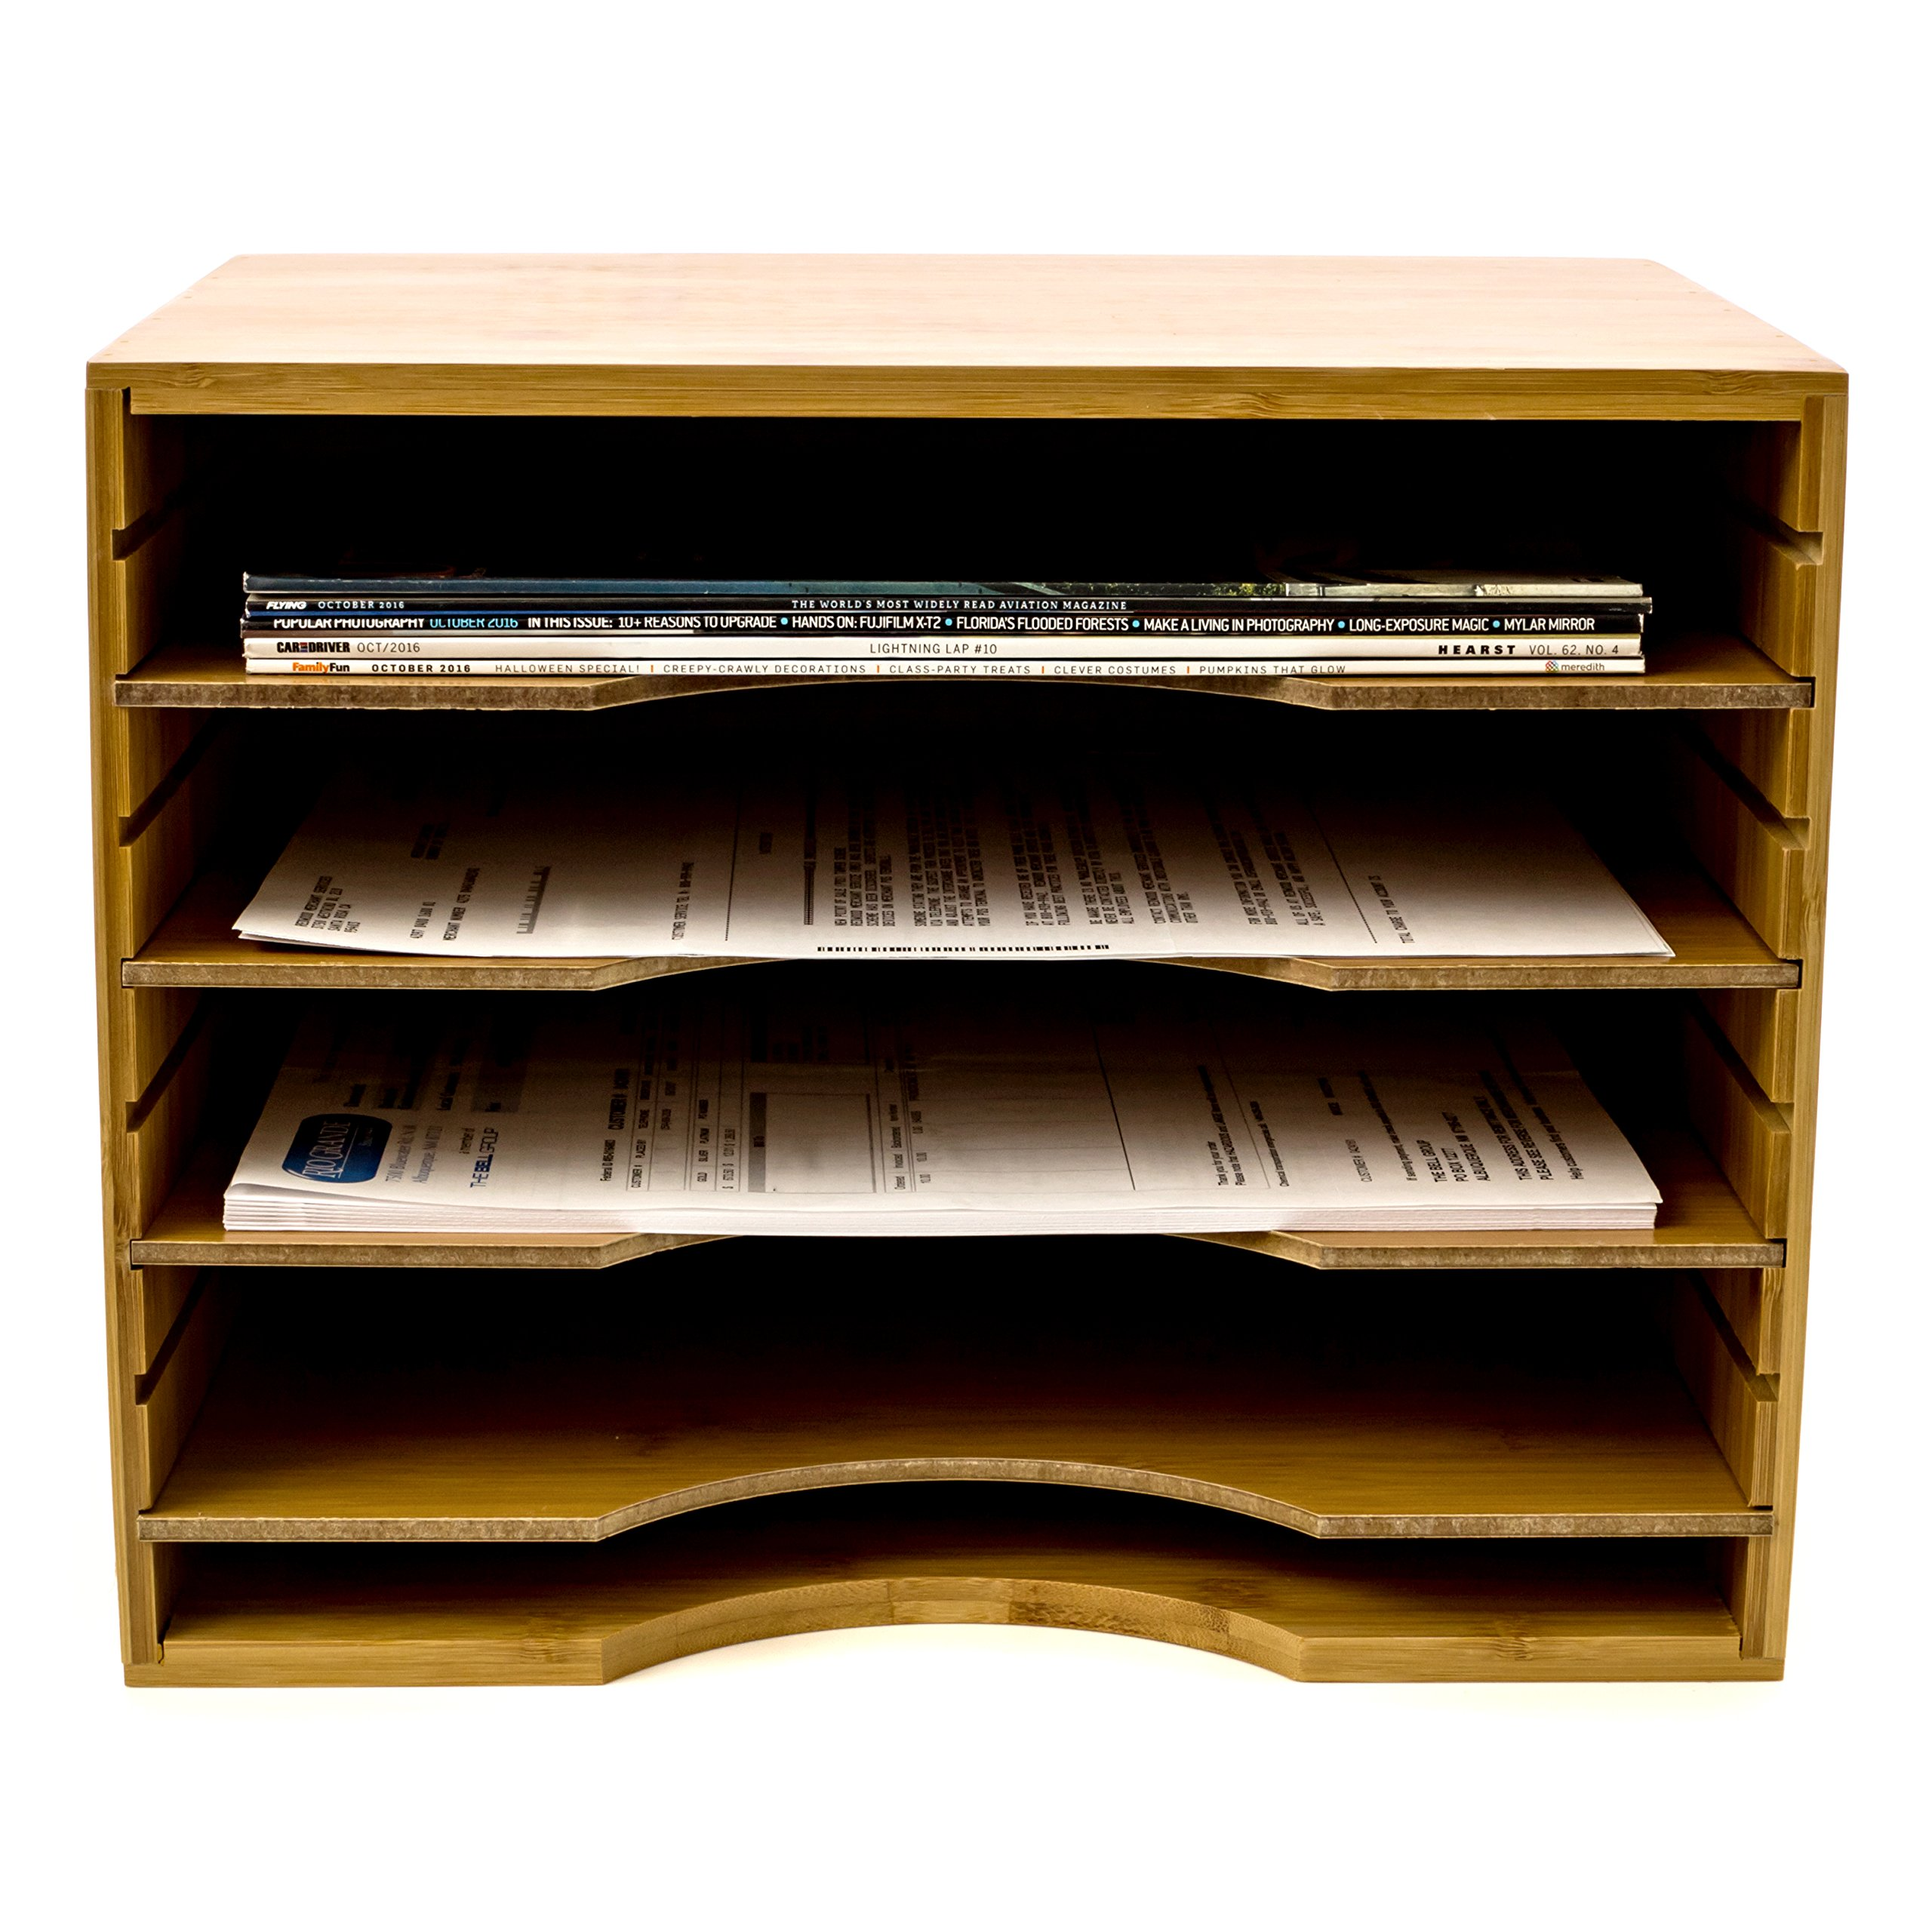 File Organizer Mail sorter, With Four Adjustable Dividers Natural Bamboo wood Color By Intriom Bamboo Collection (File Organizer) by Intriom (Image #3)